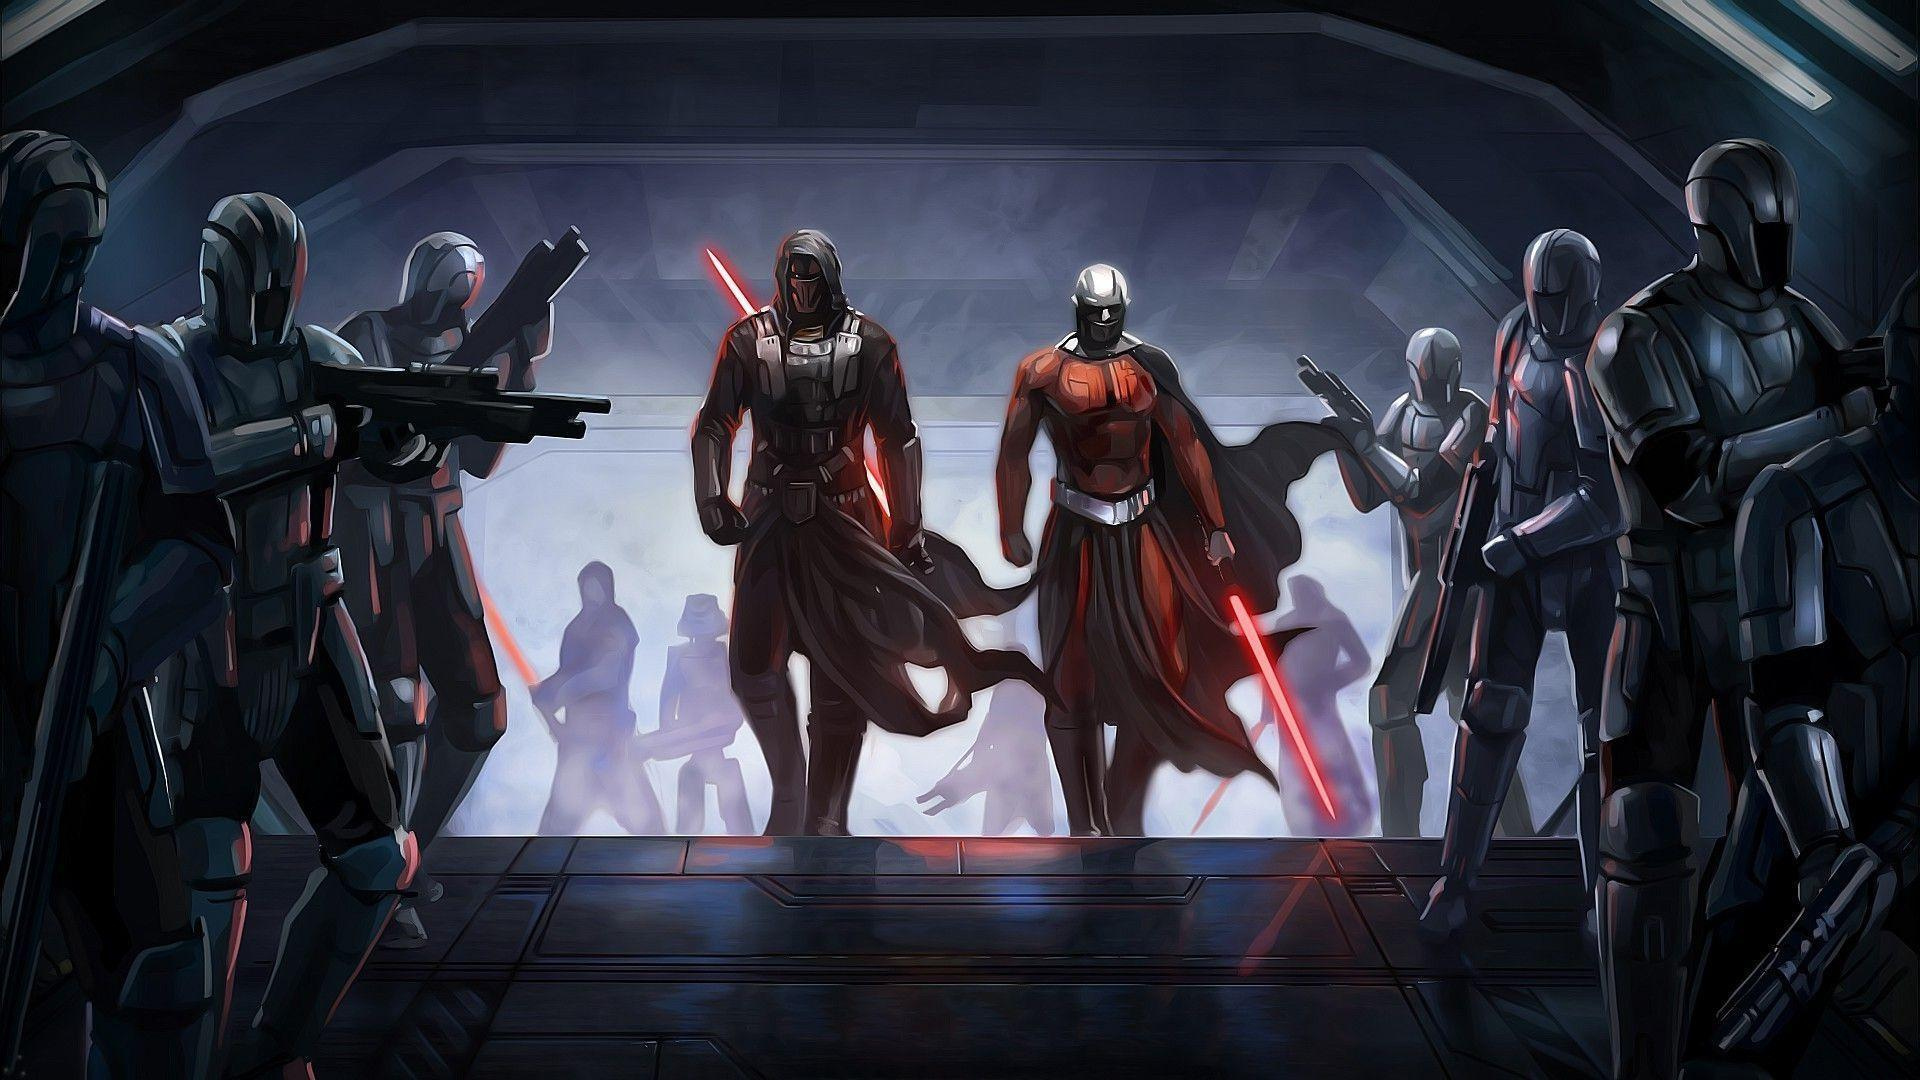 Star Wars - The Old Republic Wallpaper #